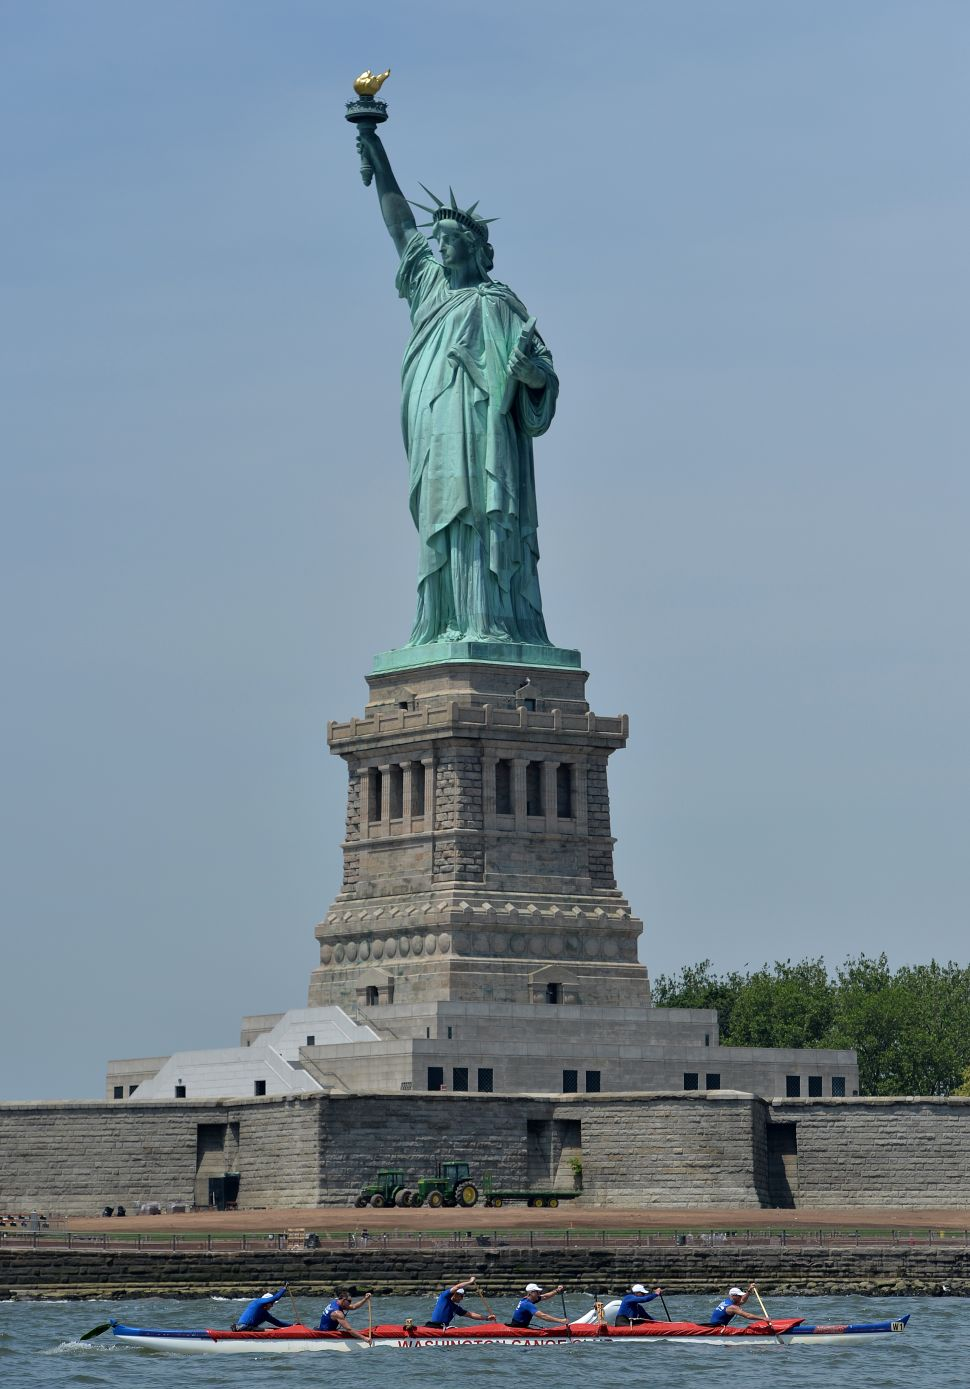 130 Years Ago, France Gave Us The Statue of Liberty